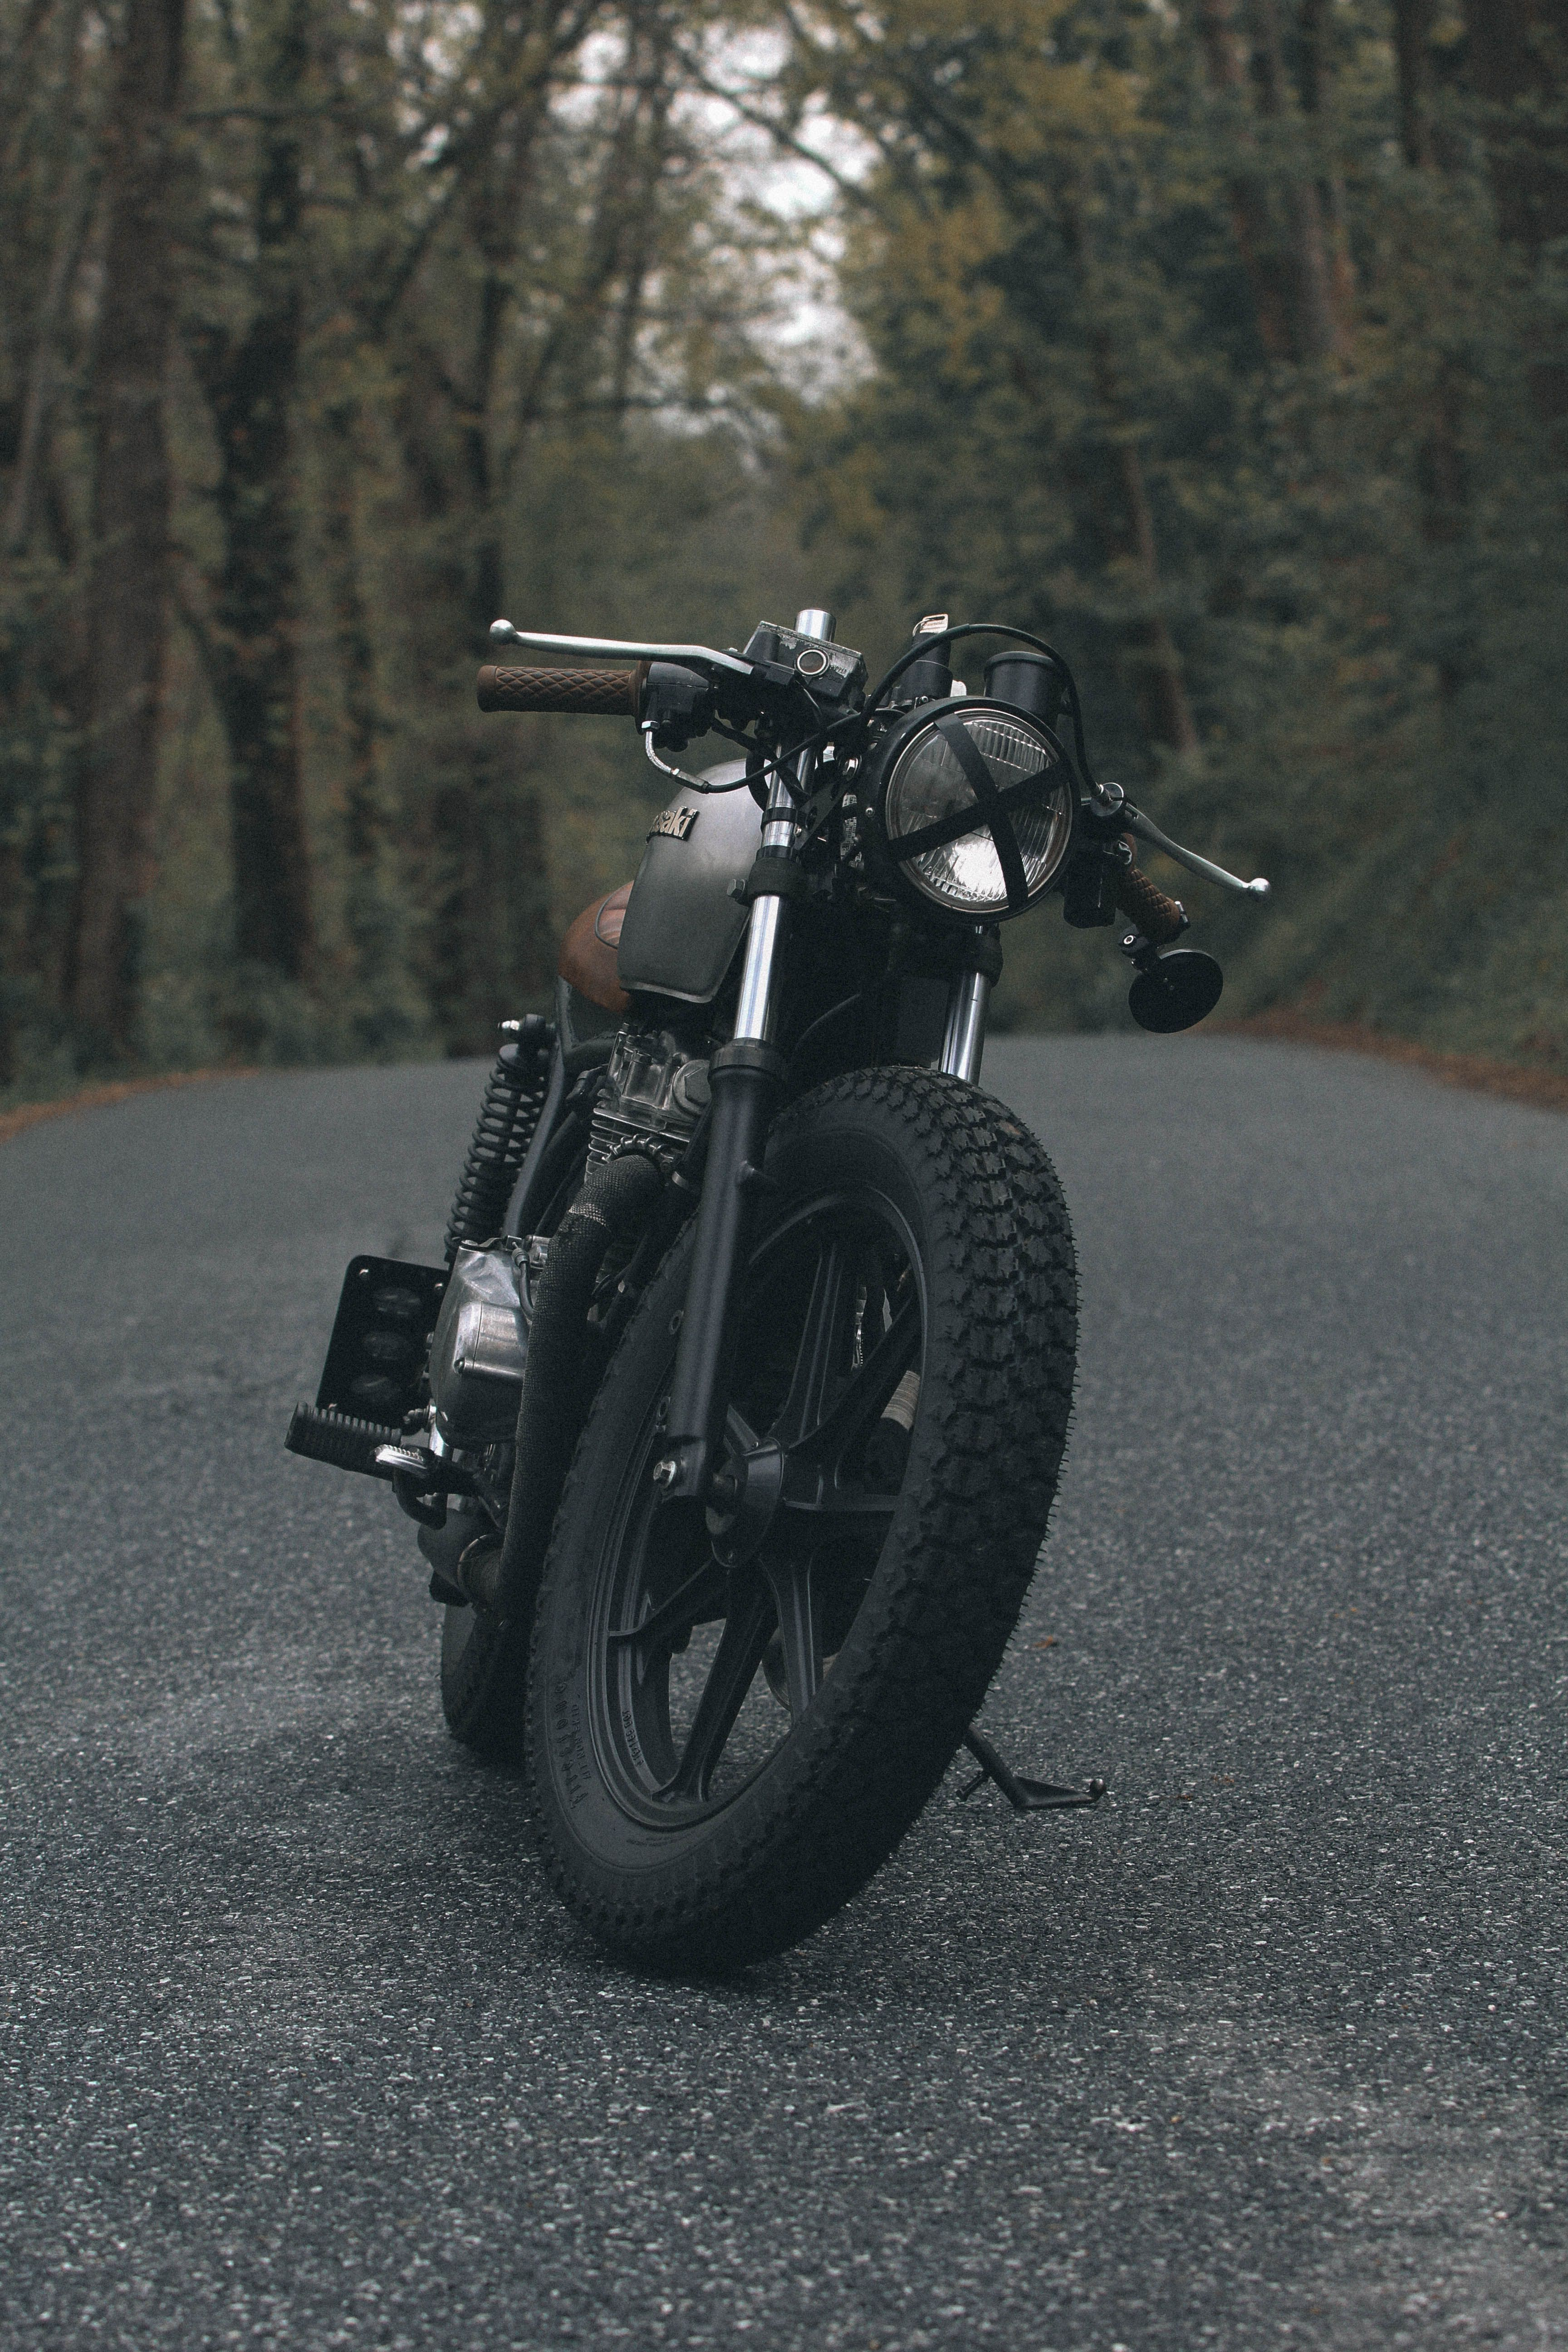 caferacer #kz440 | kz440 cafe racer | pinterest | cafe bike and cars